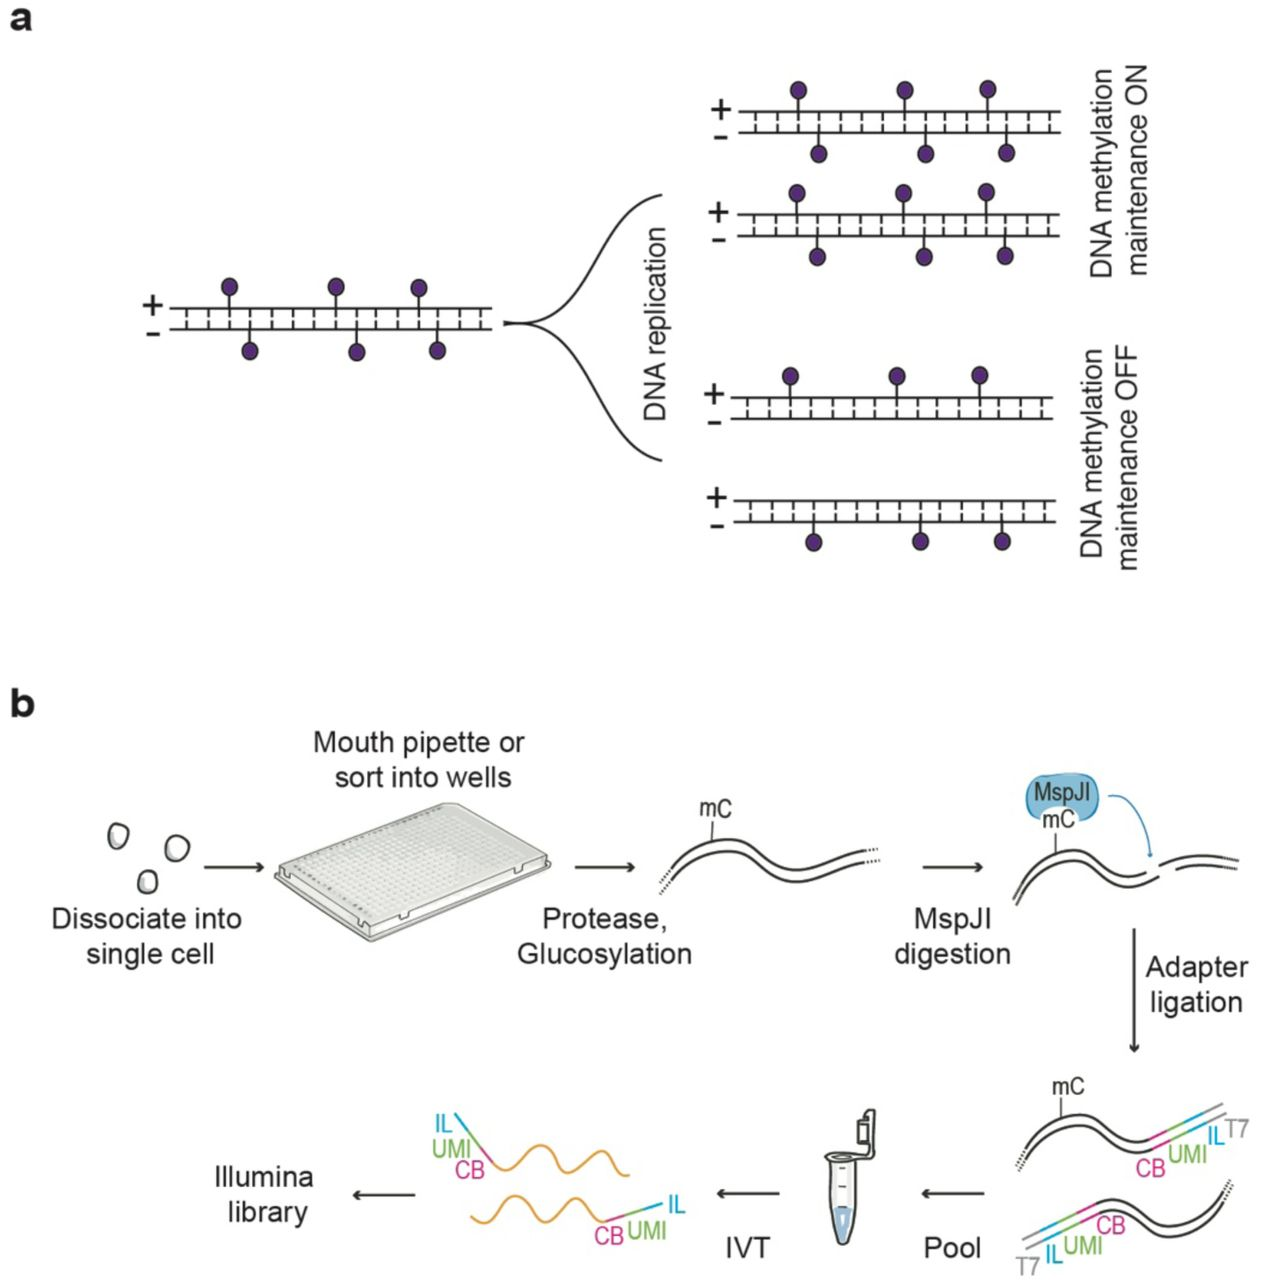 Schematic of scMspJI-seq. ( a ) DNA methylation maintenance can be probed using strand-specific quantification of 5mC in single cells. Cells displaying methylation maintenance have symmetric levels of 5mCpG on both DNA strands of a chromosome while loss of methylation maintenance results in asymmetric levels of 5mCpG between the two DNA strands. ( b ) Single cells isolated by FACS or manual pipetting are deposited into 384-well plates and lysed. Following protease treatment to strip off chromatin and blocking of 5hmC sites by glucosylation, MspJI is used to recognize 5mC sites and cut gDNA 16 bp downstream of the methylated cytosine. After ligating double-stranded adapters – containing a cell-specific barcode (CB, pink), a random 3 bp unique molecule identifier to label individual 5mC sites on different alleles (UMI, green), 5' Illumina adapter (IL, blue) and T7 promoter (T7, gray) – to the fragmented gDNA, molecules from all single cells are pooled and amplified by in vitro transcription. The amplified RNA molecules are used to prepare scMspJI-seq libraries and sequenced on an Illumina platform.